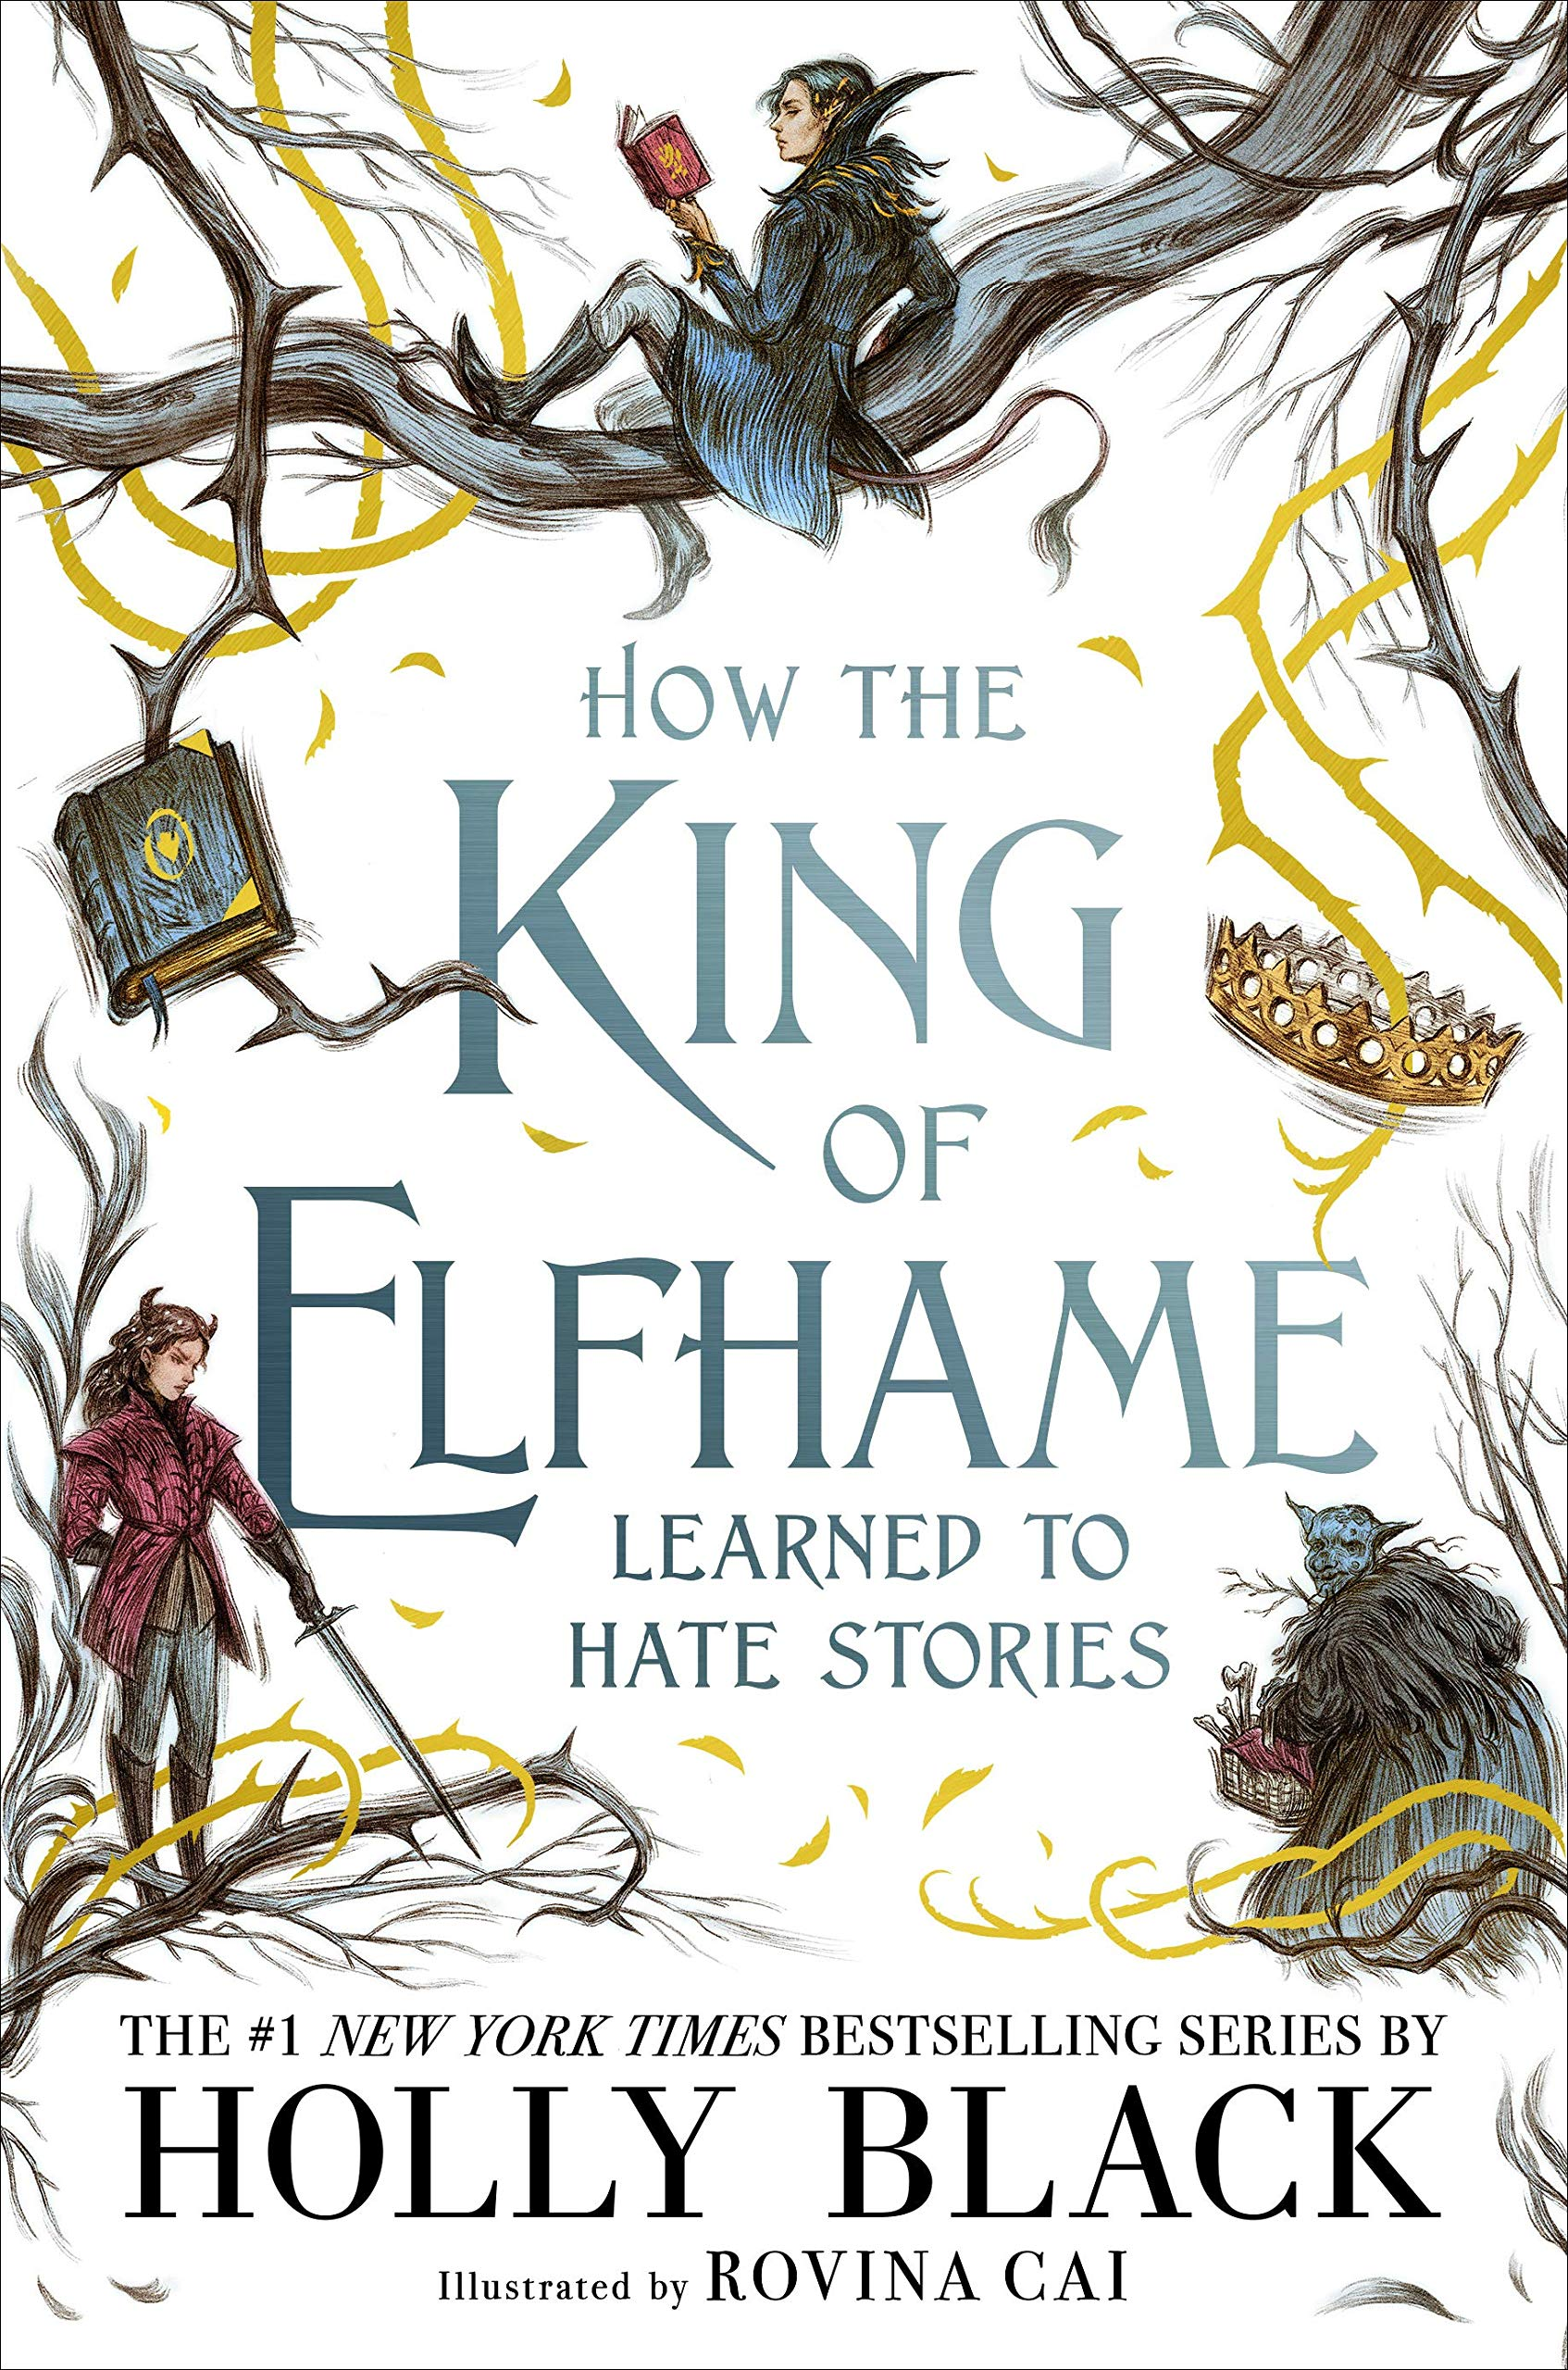 How the King of Elhame Learned to Hate Stories